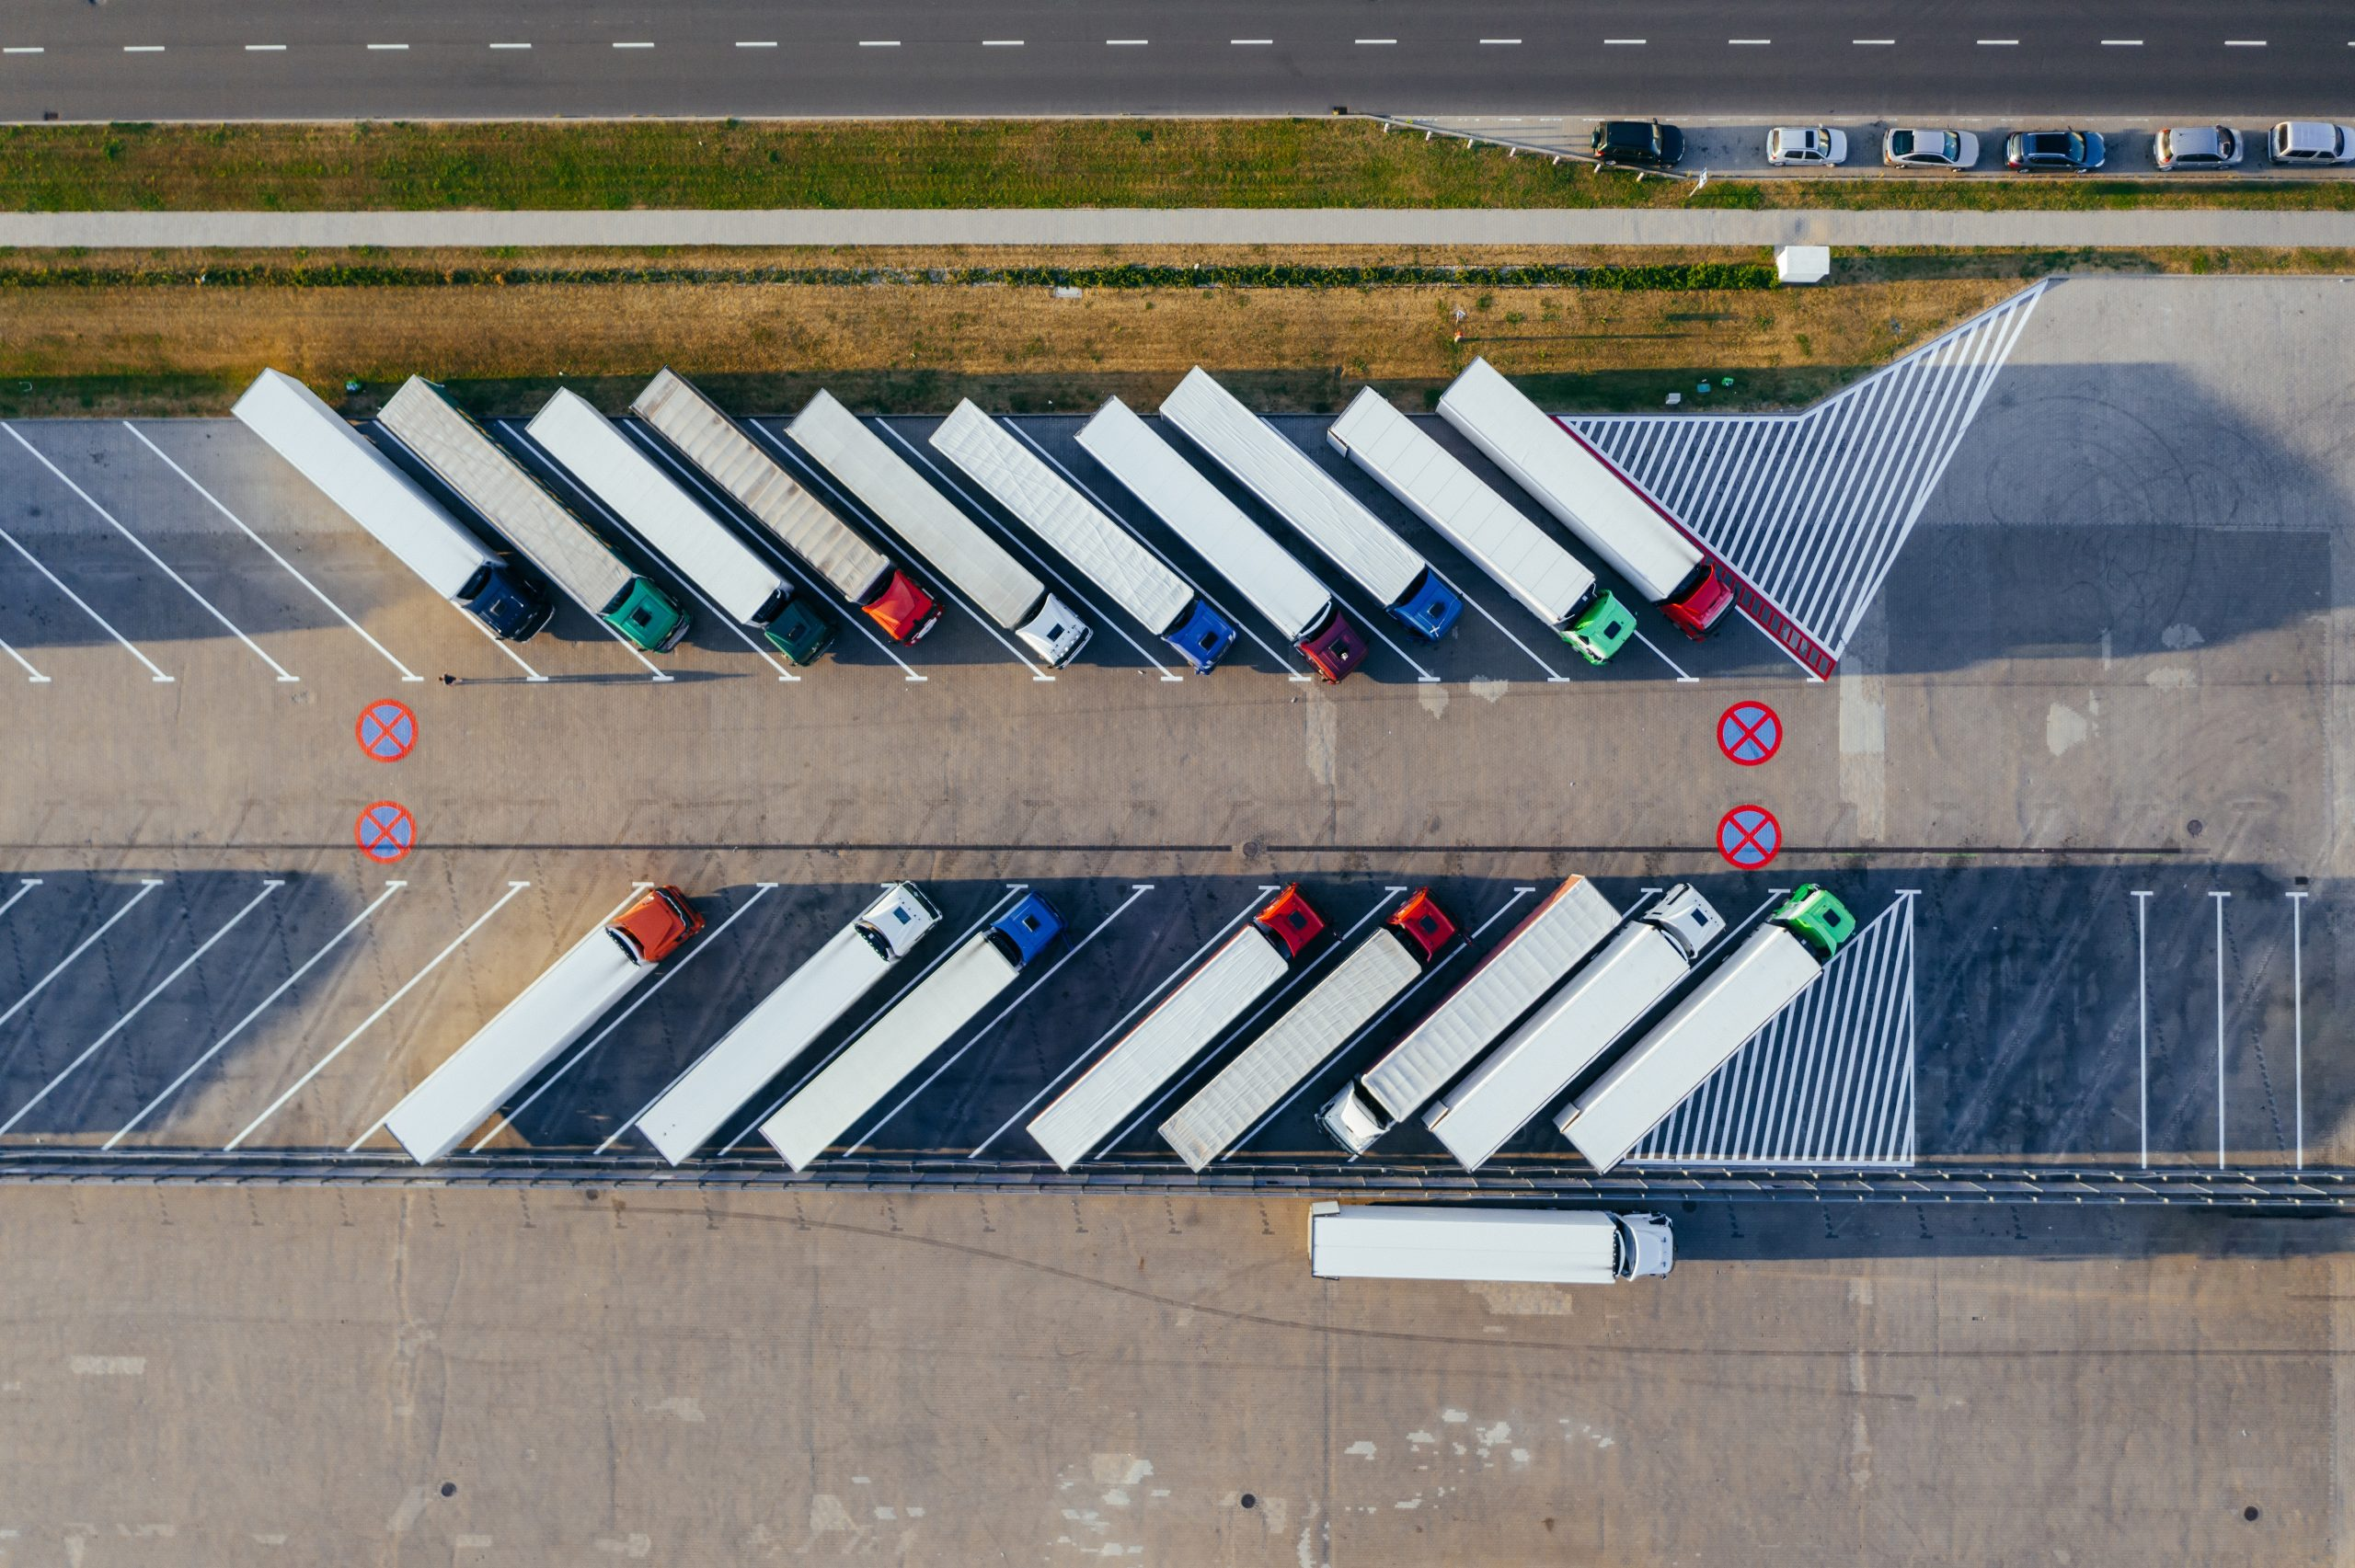 aerial-photography-of-trucks-parked-2800121